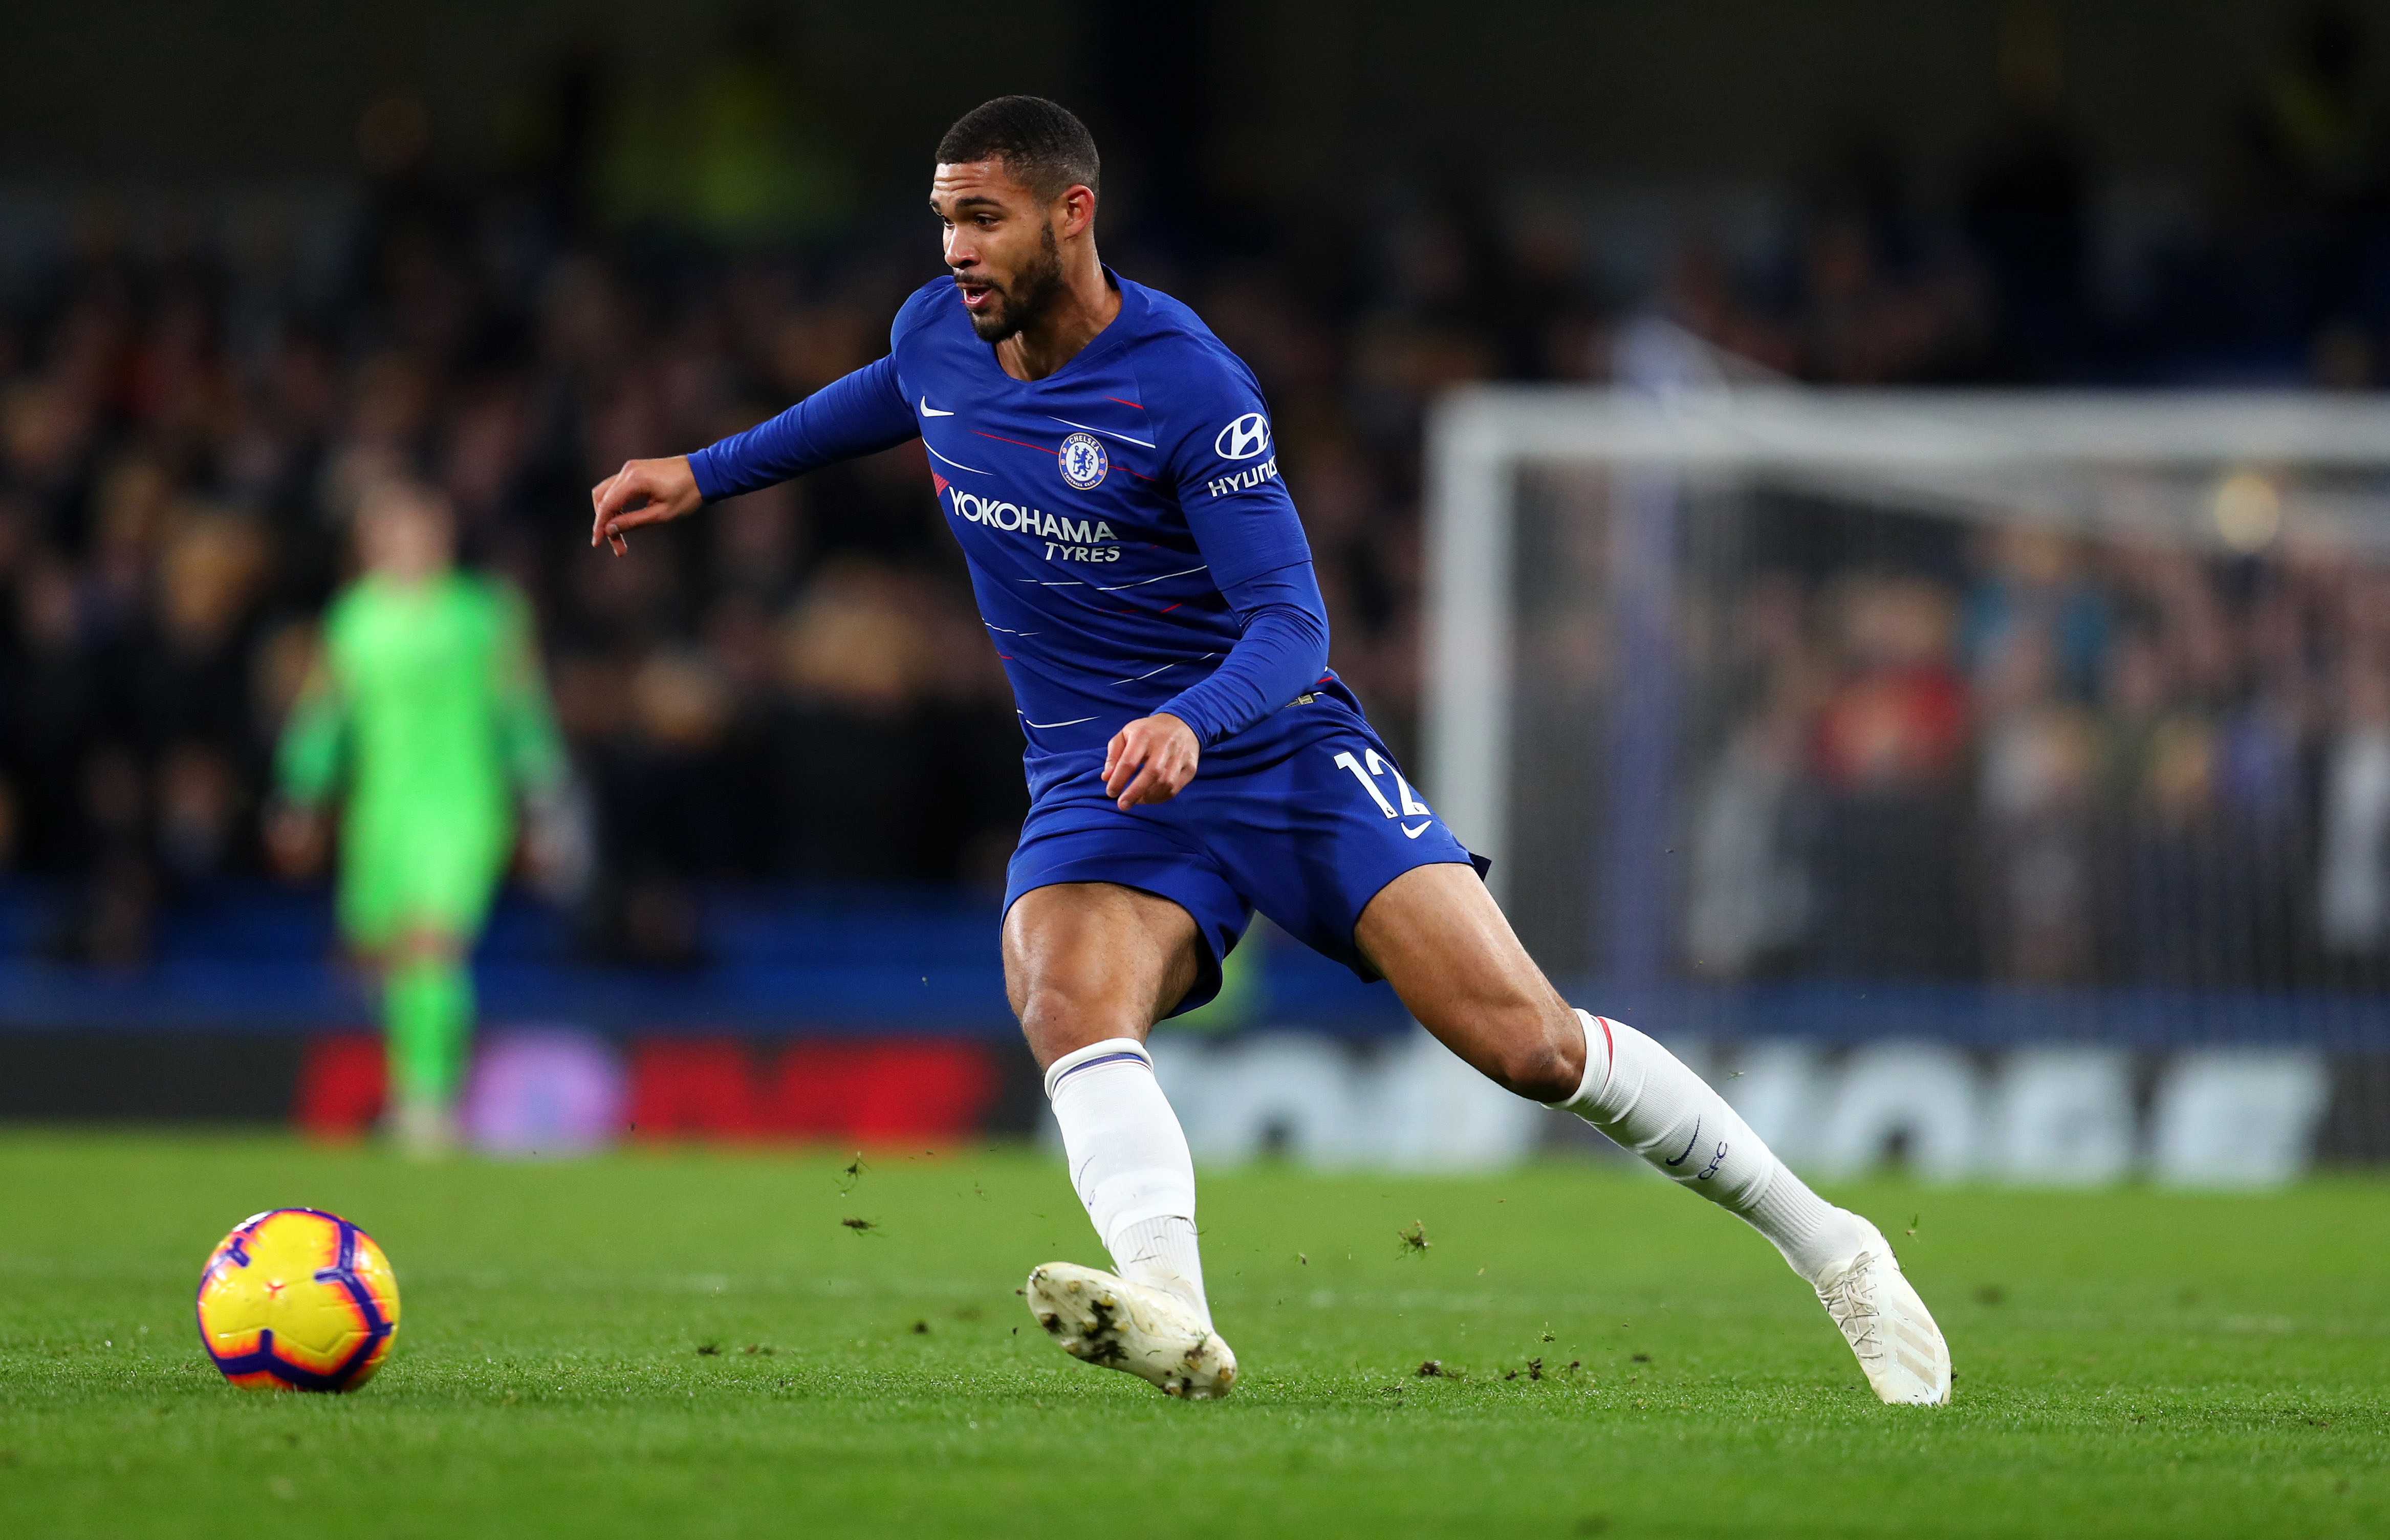 Ruben Loftus-Cheek of Chelsea during the Premier League match between Chelsea FC and Leicester City at Stamford Bridge on December 22 2018